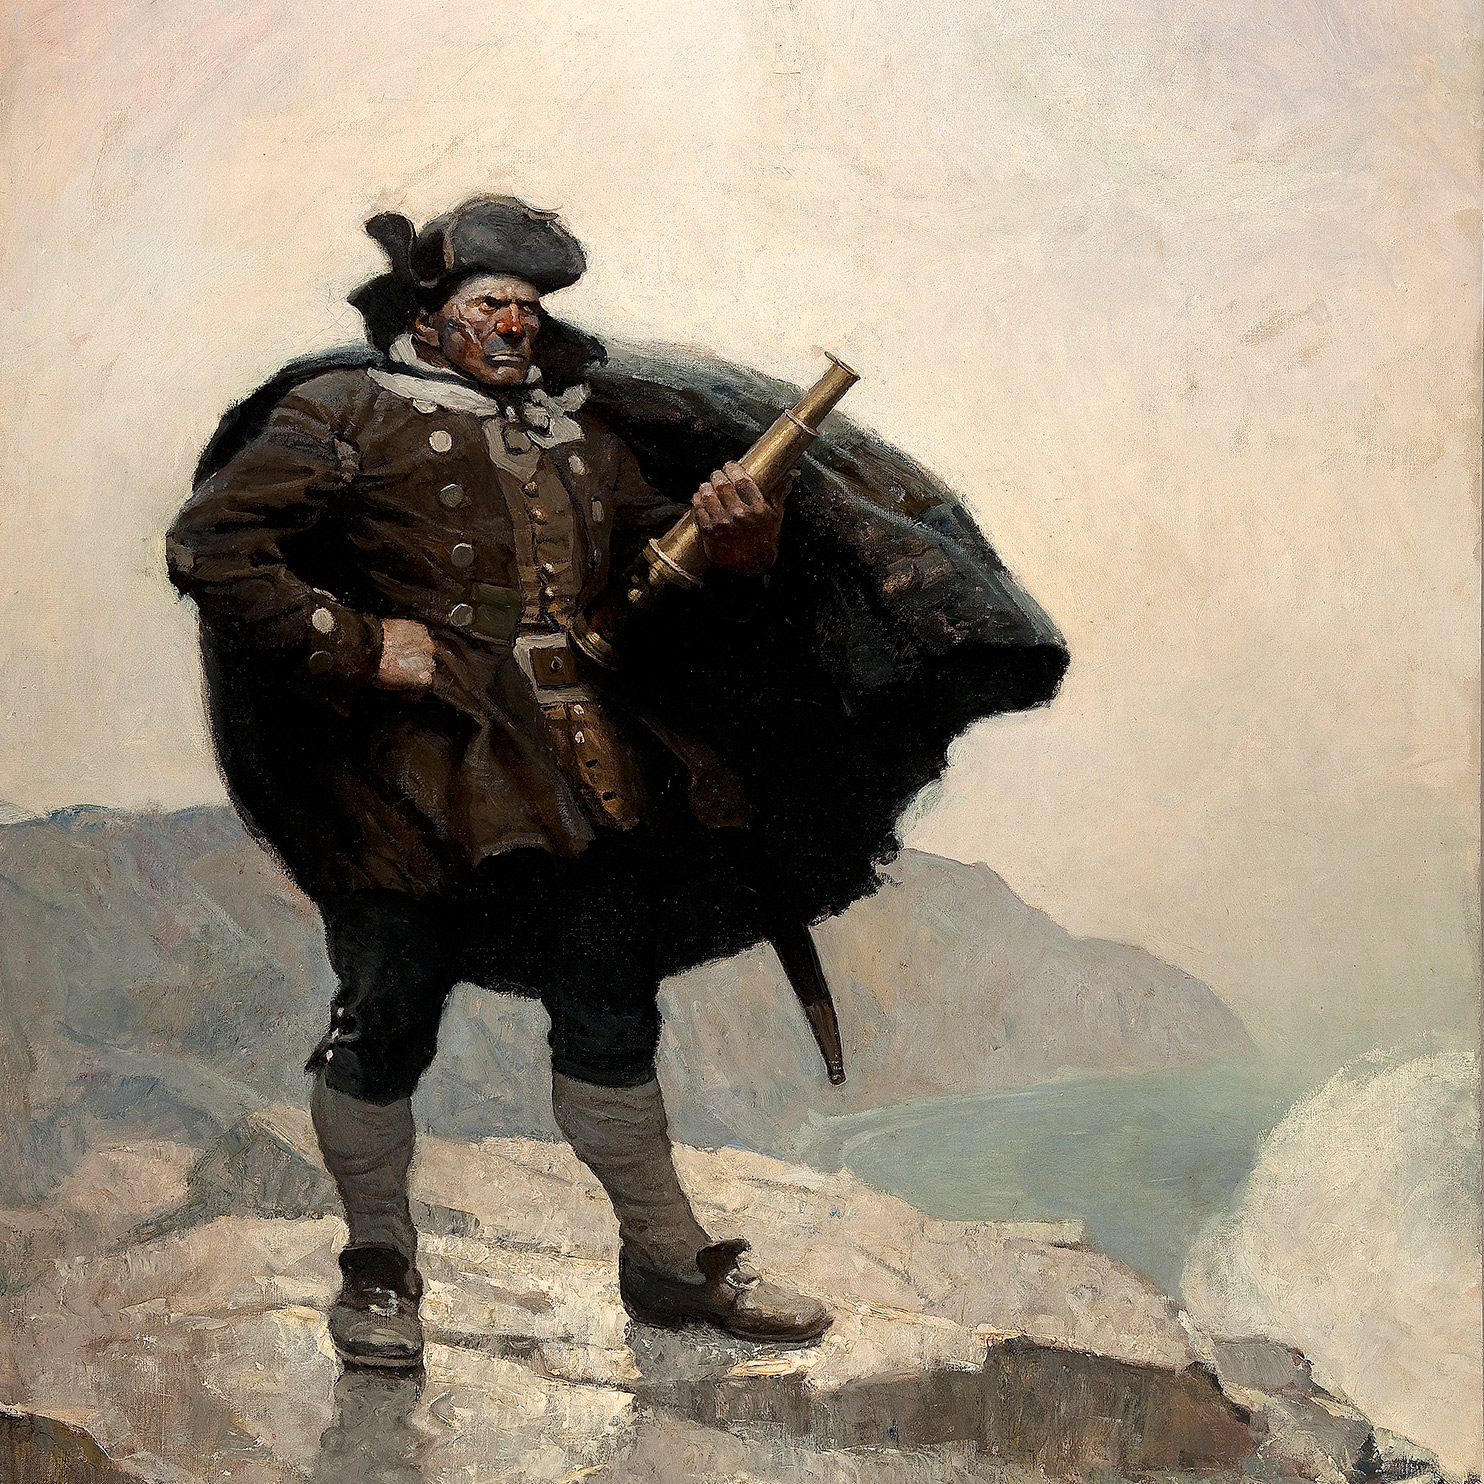 N.C. Wyeth painting